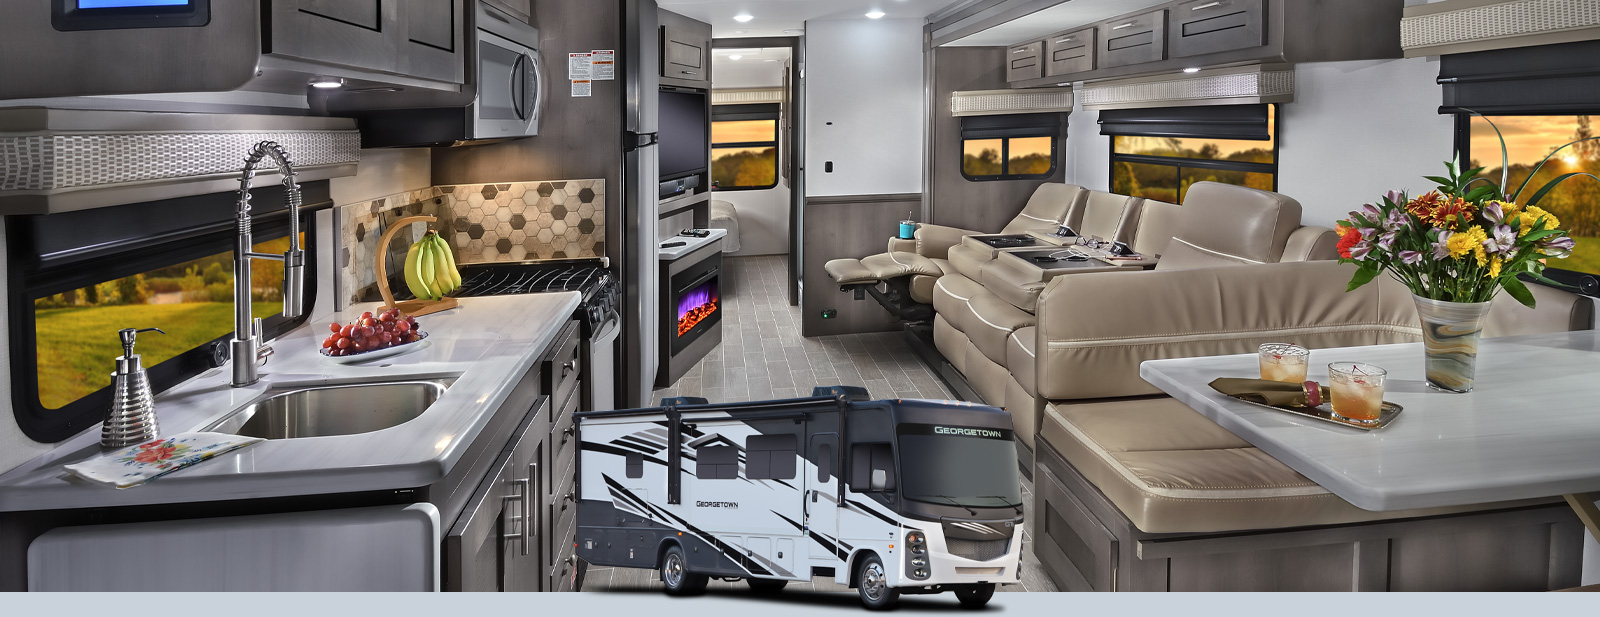 Georgetown 5 Series GT5 | Forest River RV - Manufacturer of Travel